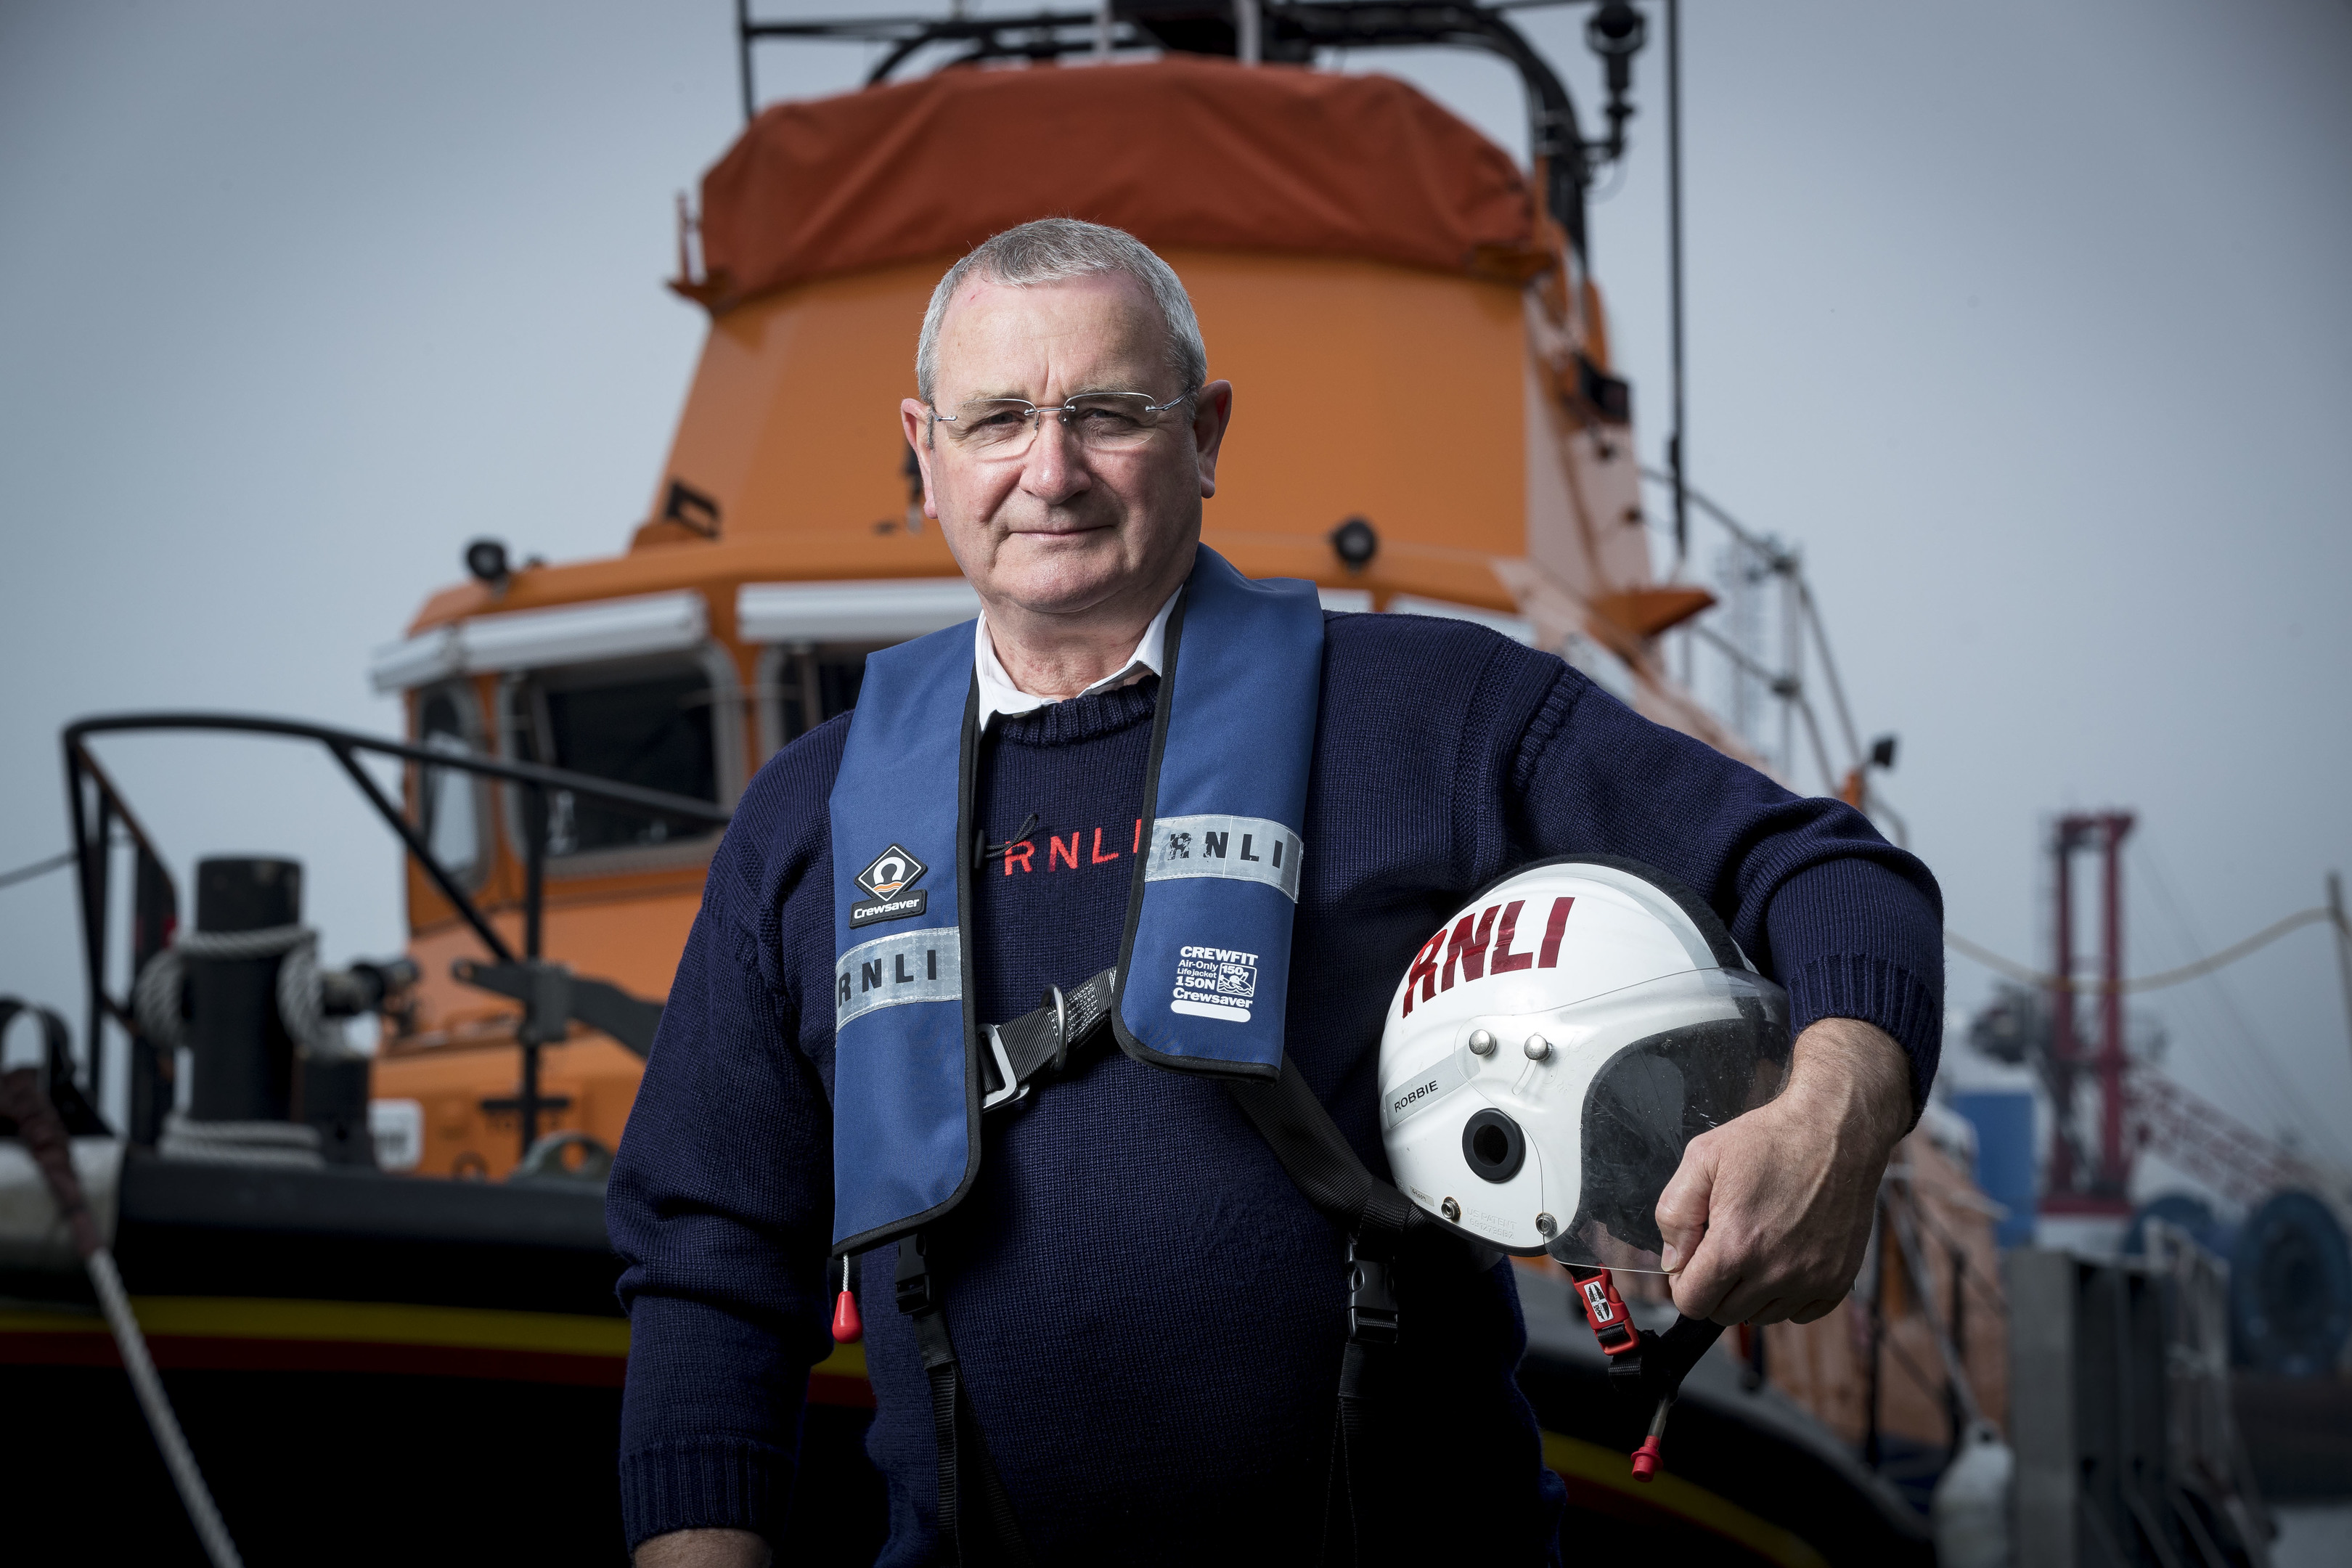 Bill Deans, of the Aberdeen RNLI Lifeboat